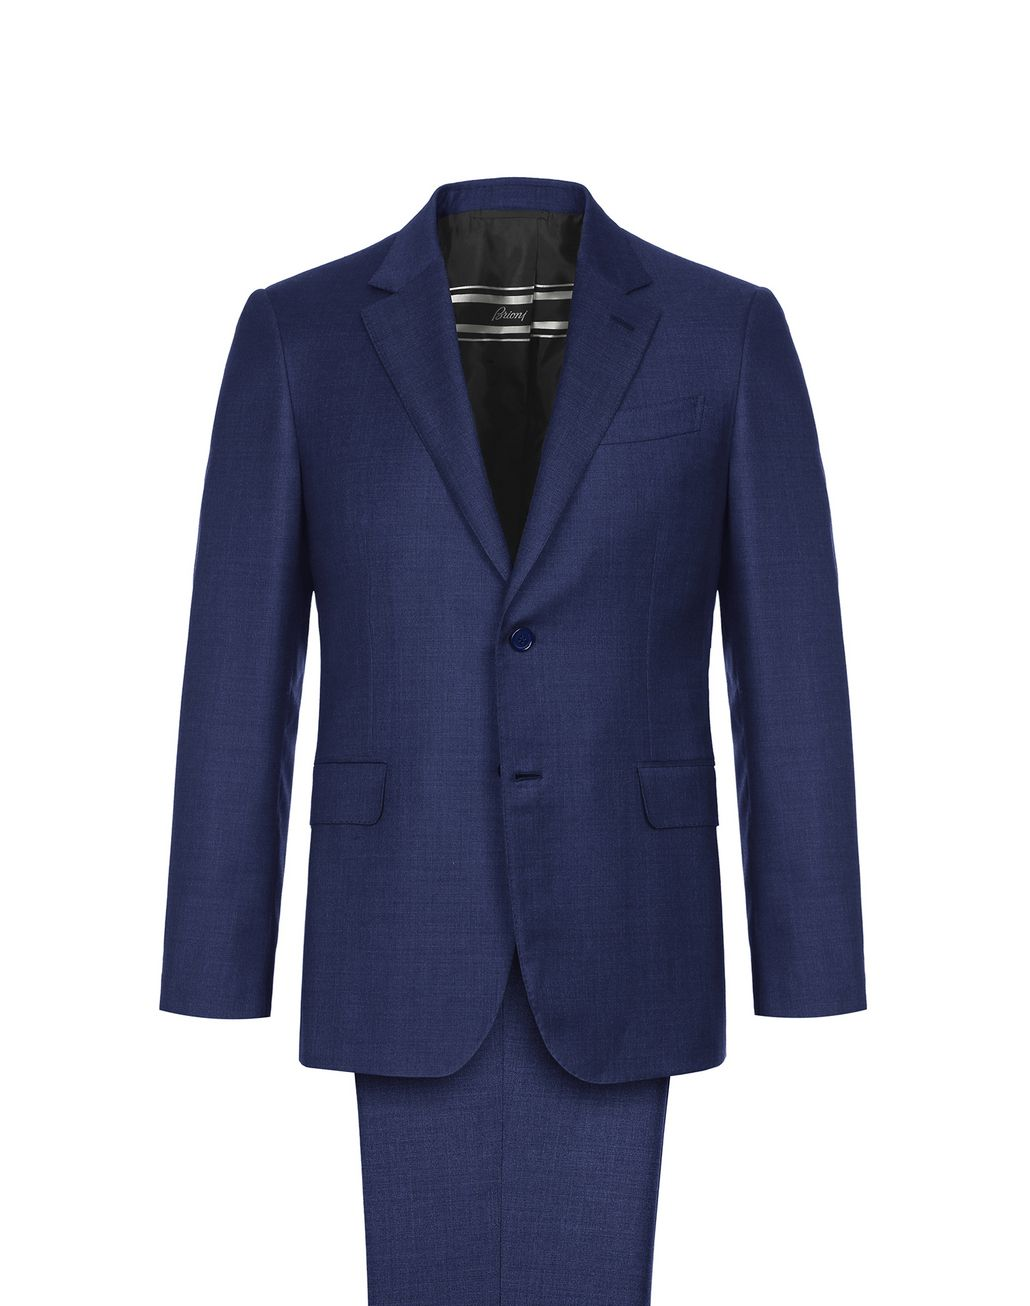 BRIONI Royal Blue Primo Suit Suits & Jackets Man f